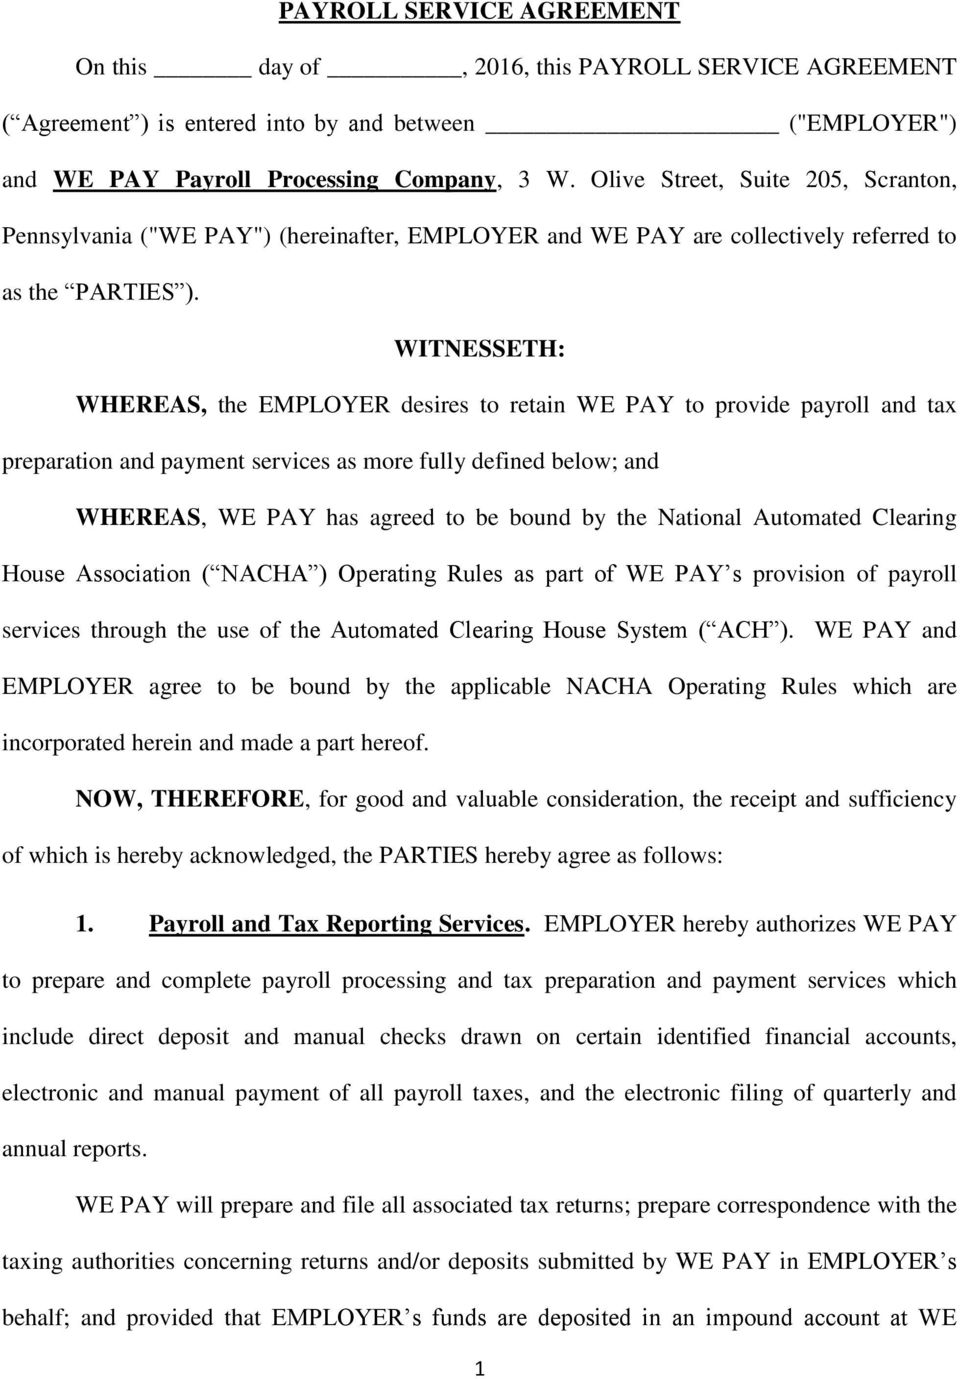 WITNESSETH: WHEREAS, the EMPLOYER desires to retain WE PAY to provide payroll and tax preparation and payment services as more fully defined below; and WHEREAS, WE PAY has agreed to be bound by the